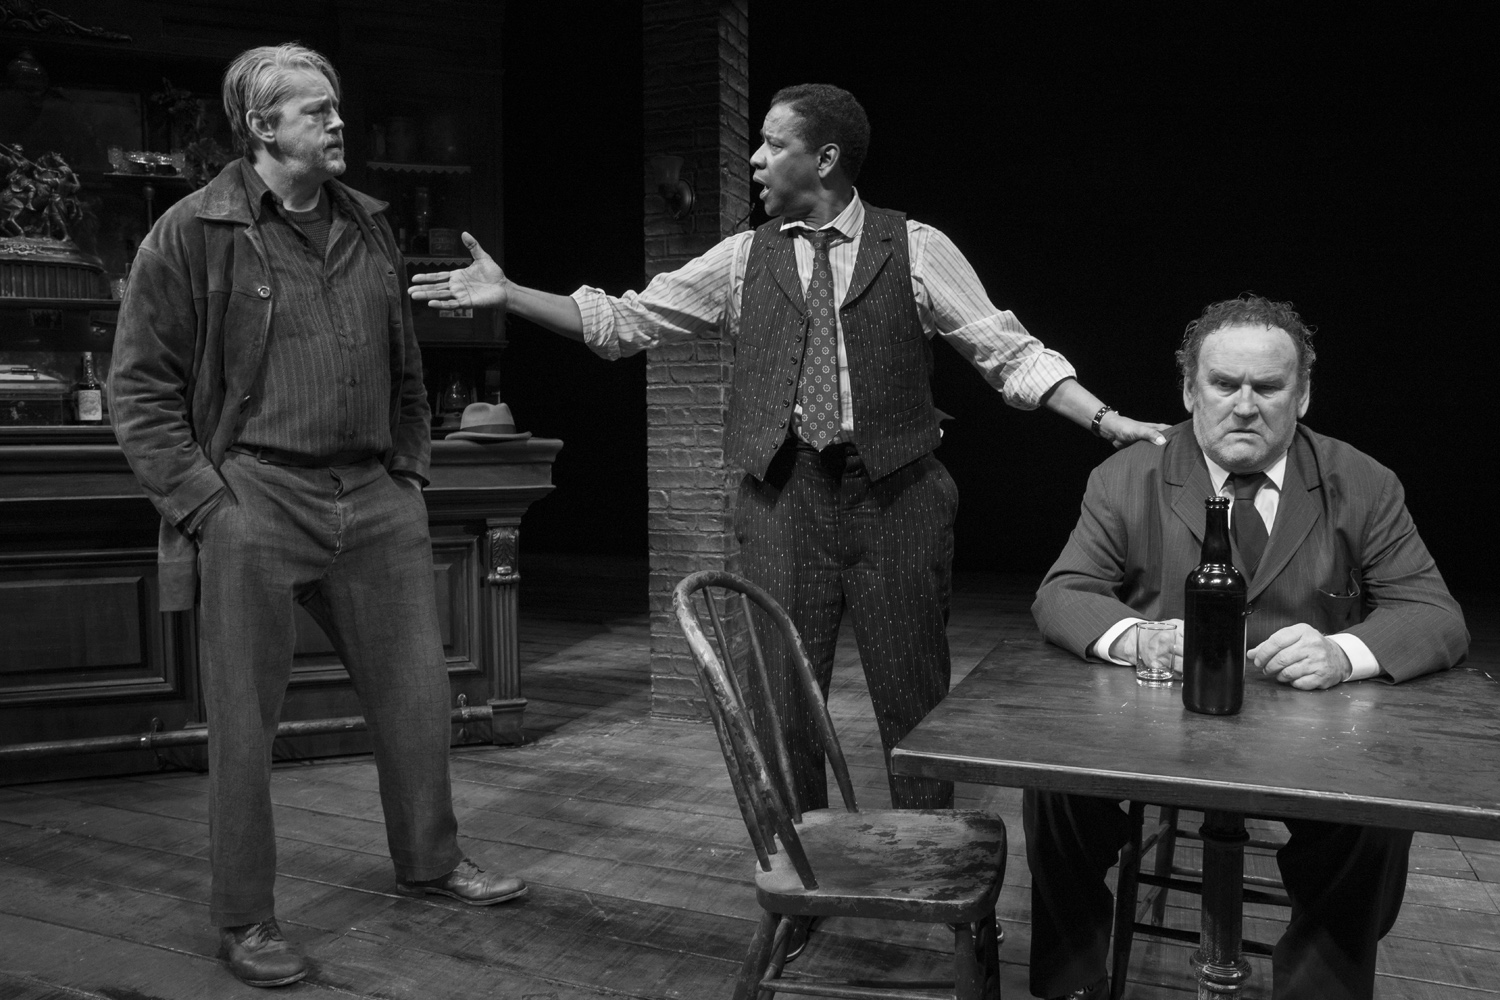 David-Morse-Denzel-Washington-and-Colm-Meaney-in-THE-ICEMAN-COMETH.-Photo-by-Julieta-Cervantes.jpg